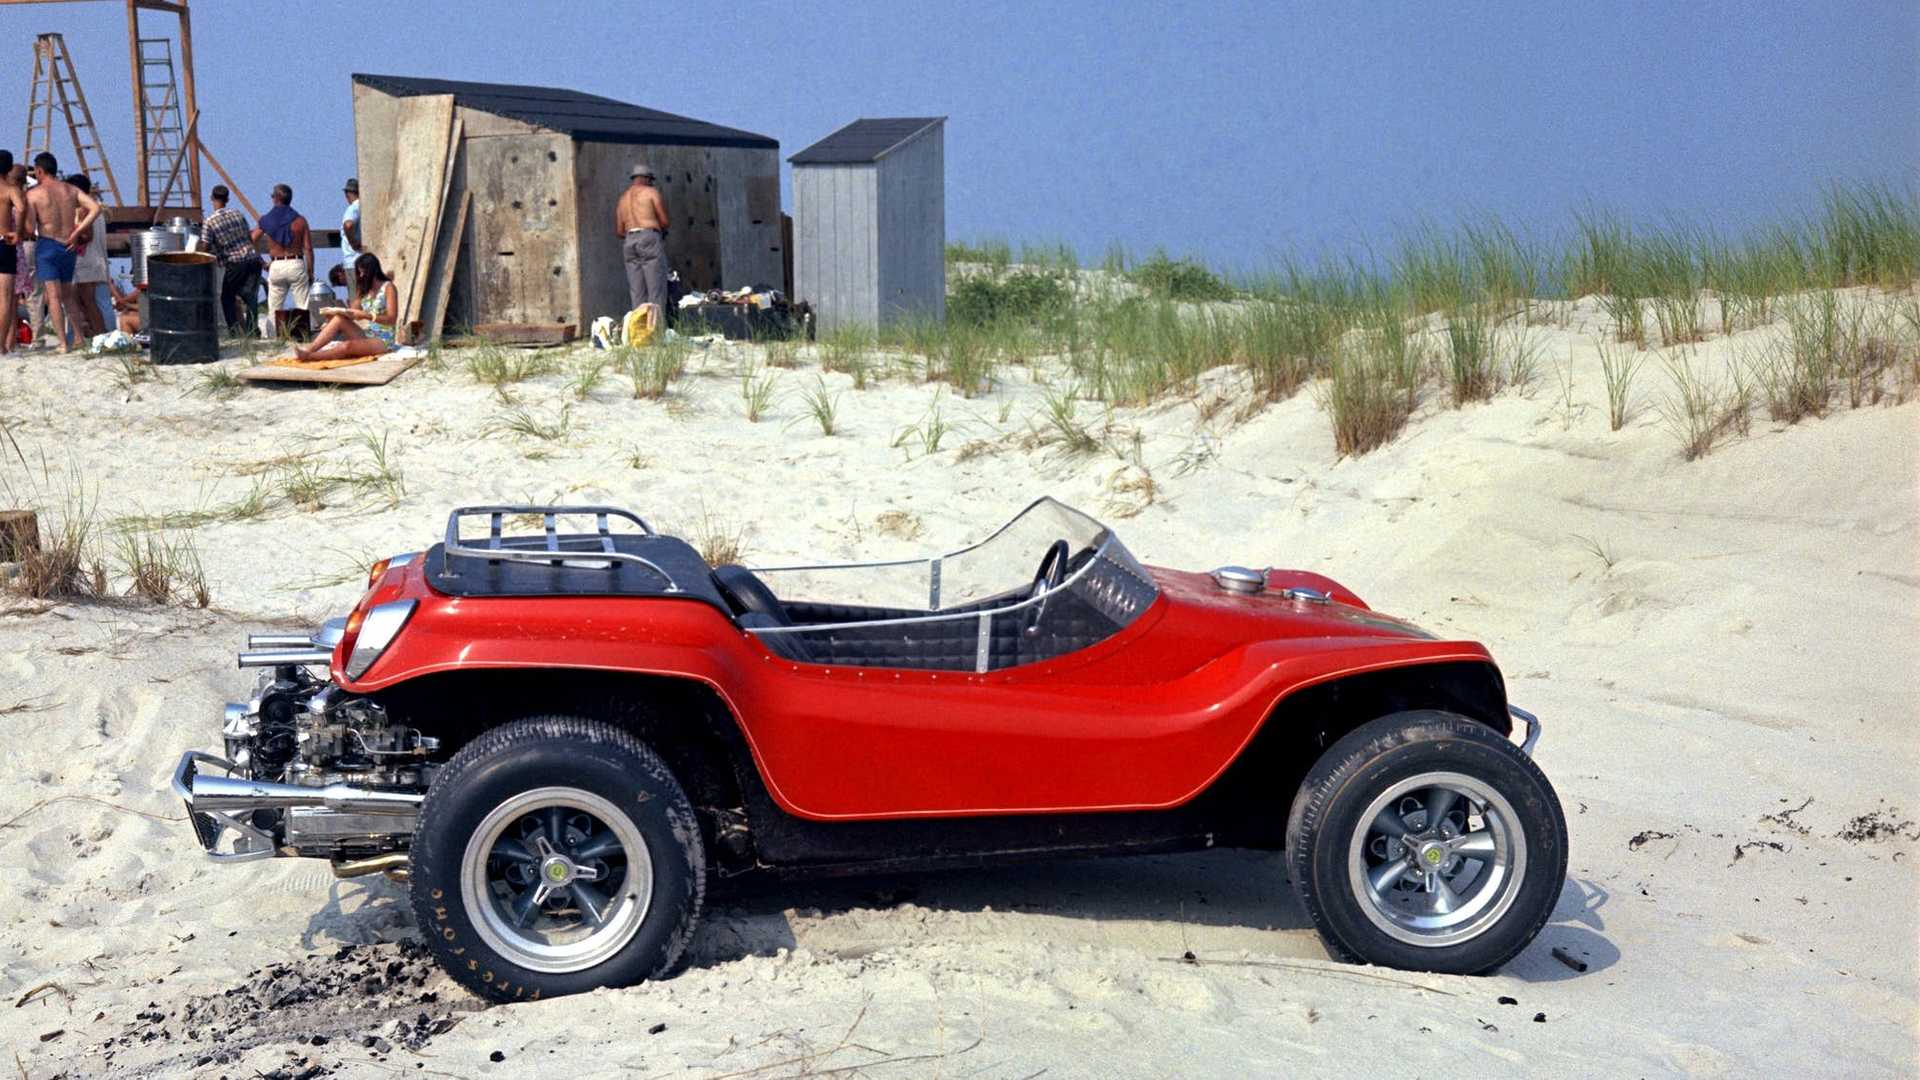 Steve McQueen's 'Thomas Crown Affair' Dune Buggy Goes To